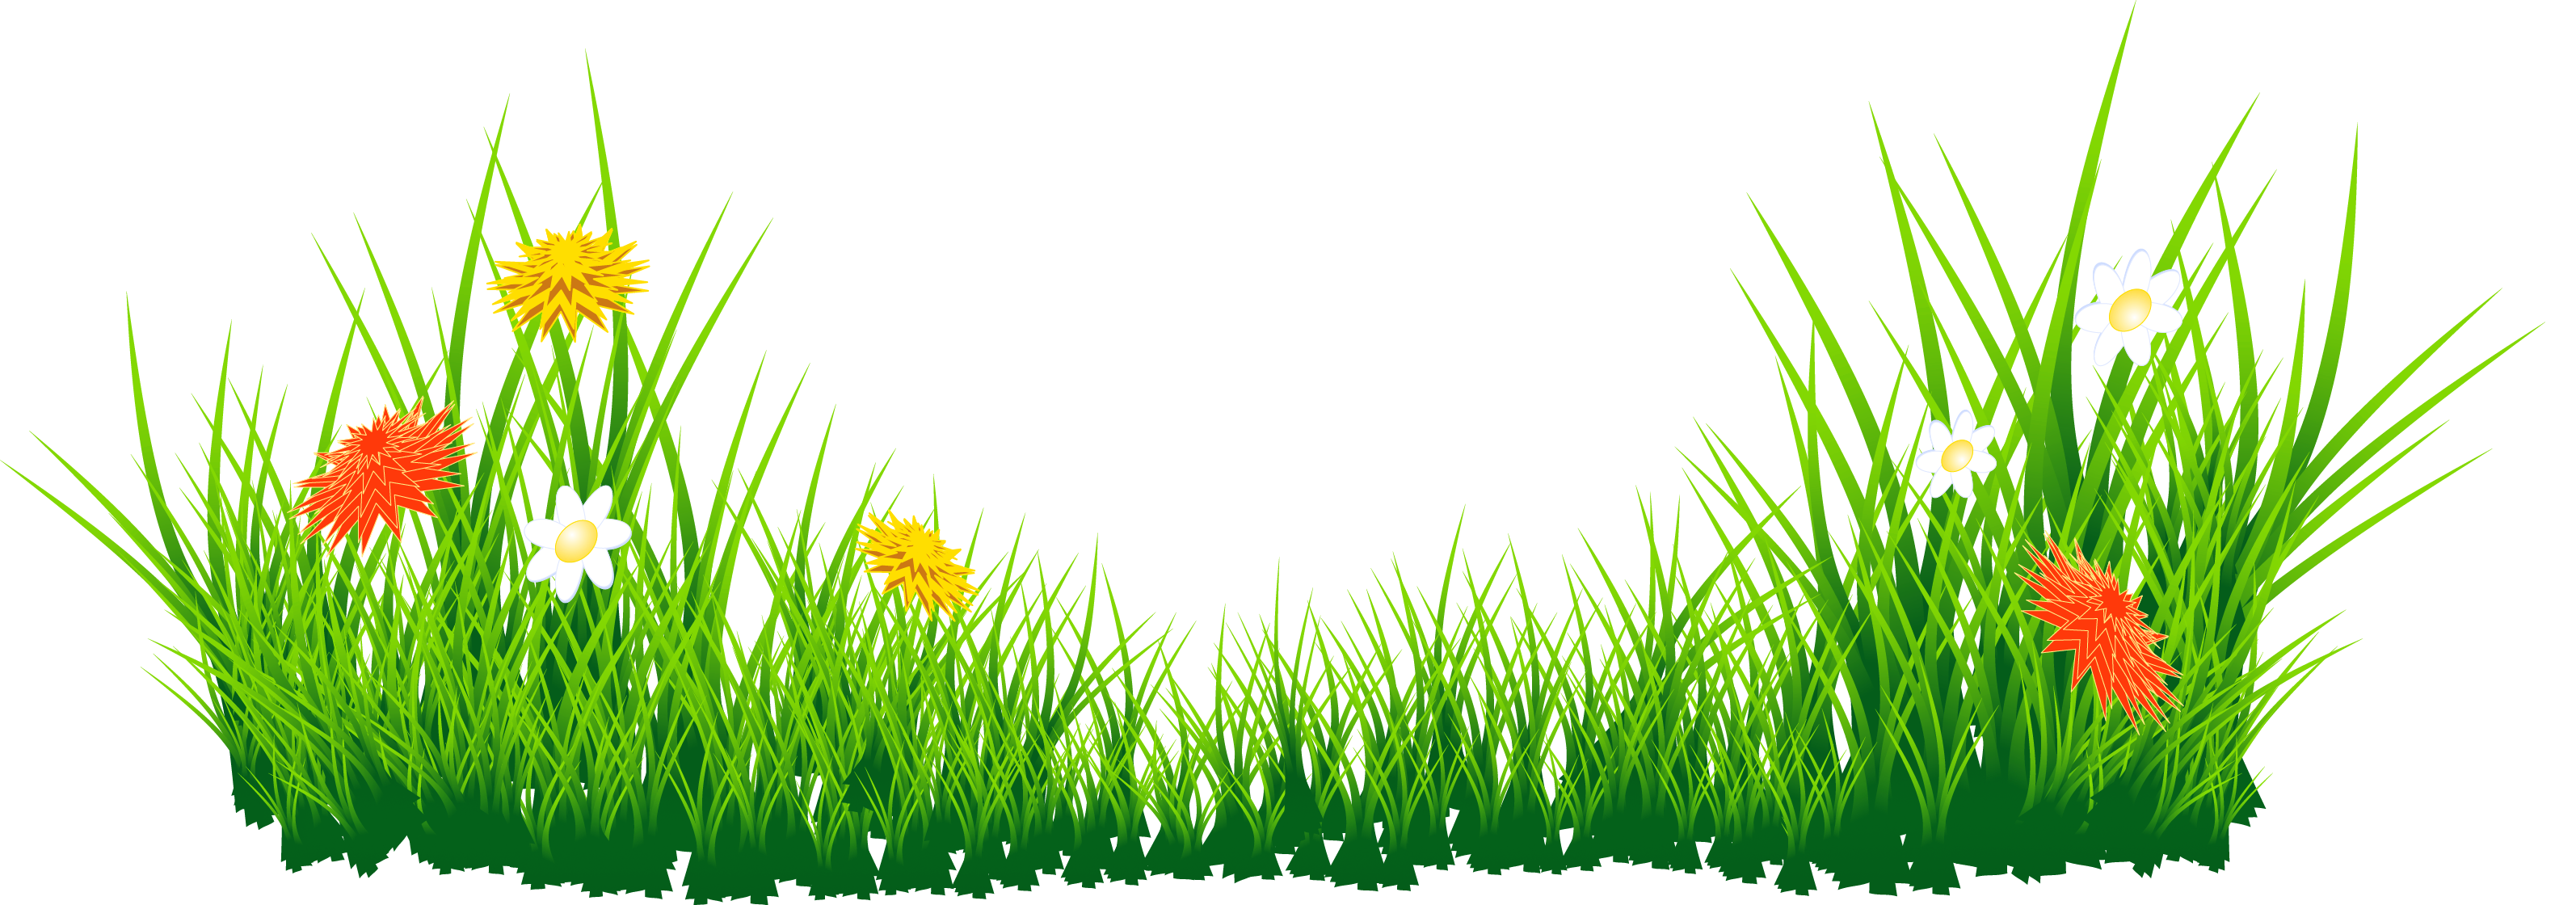 Blog great easter day. R clipart green